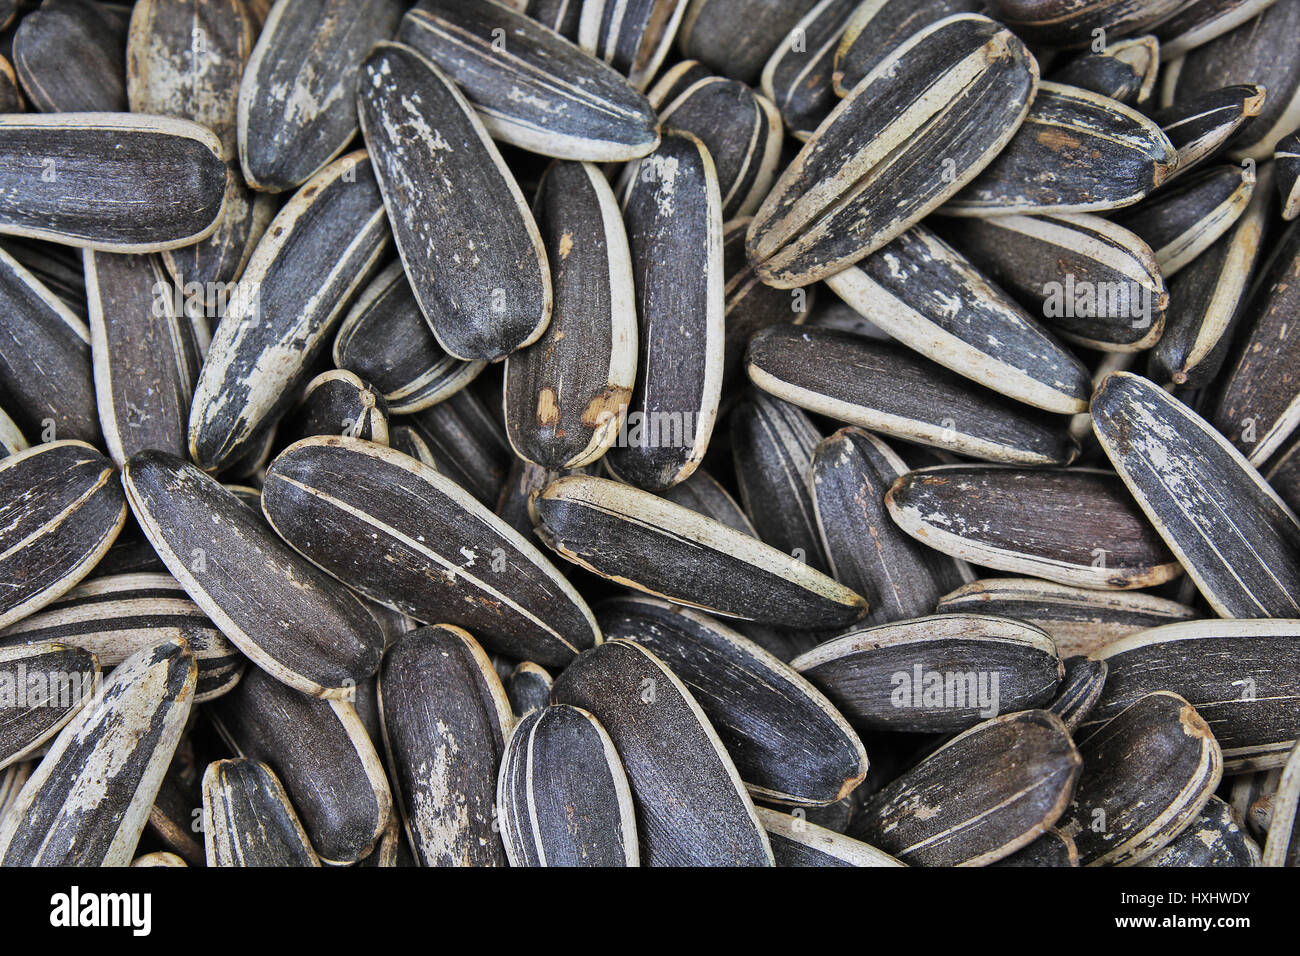 Sunflower Seeds Seed Texture As Background Black And White Roasted Organic Food Photography In Studio